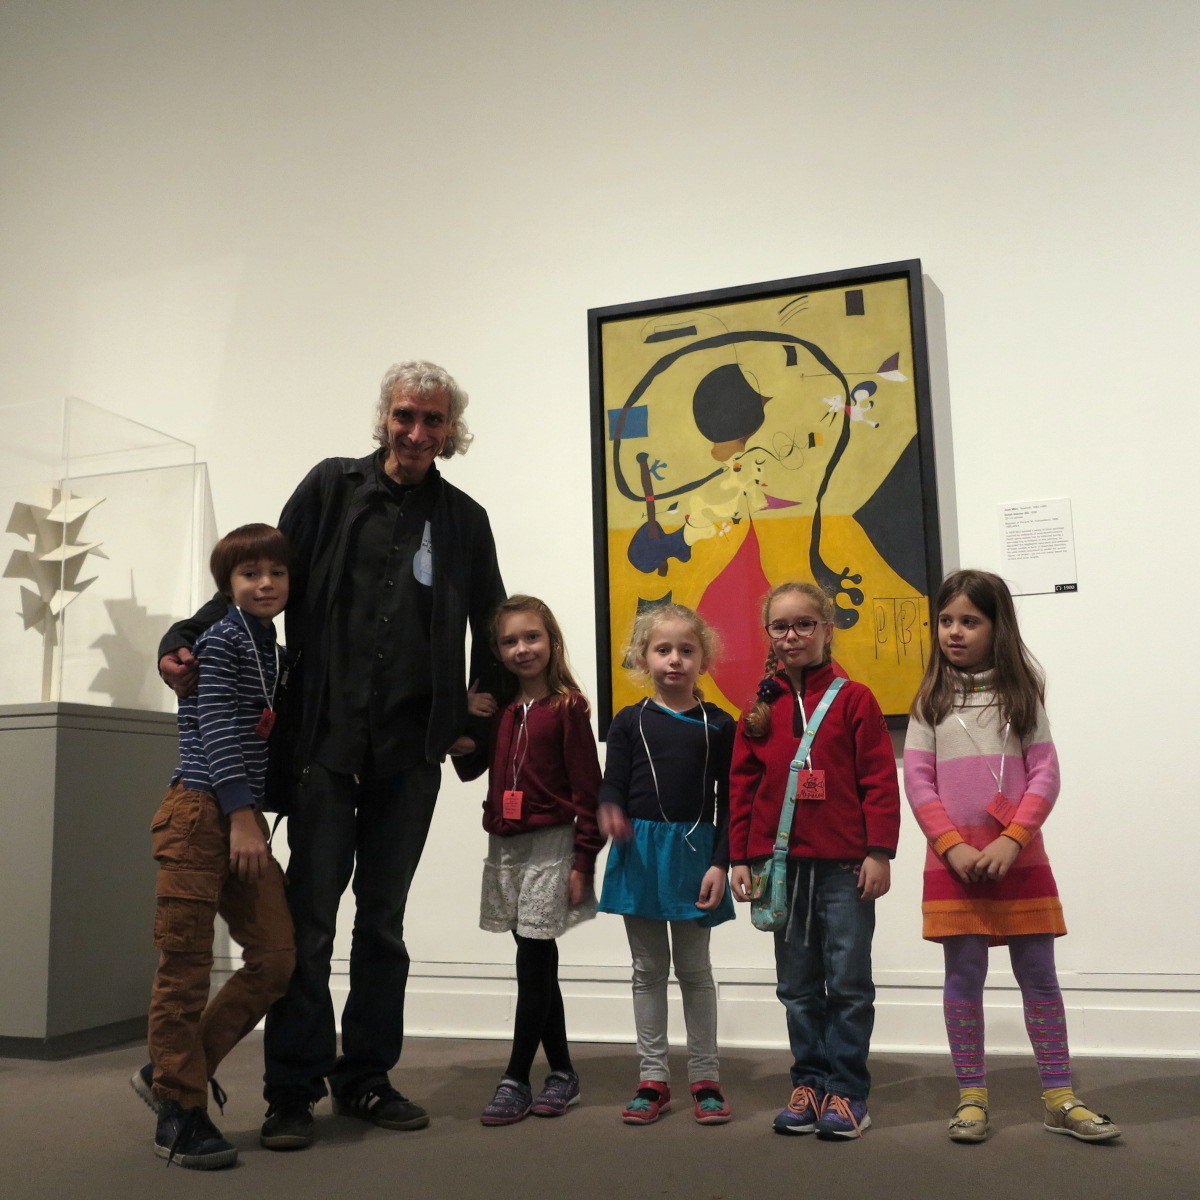 Metforkids Museum tours Met with Boris Kuznetsov Oct 16th, 2016